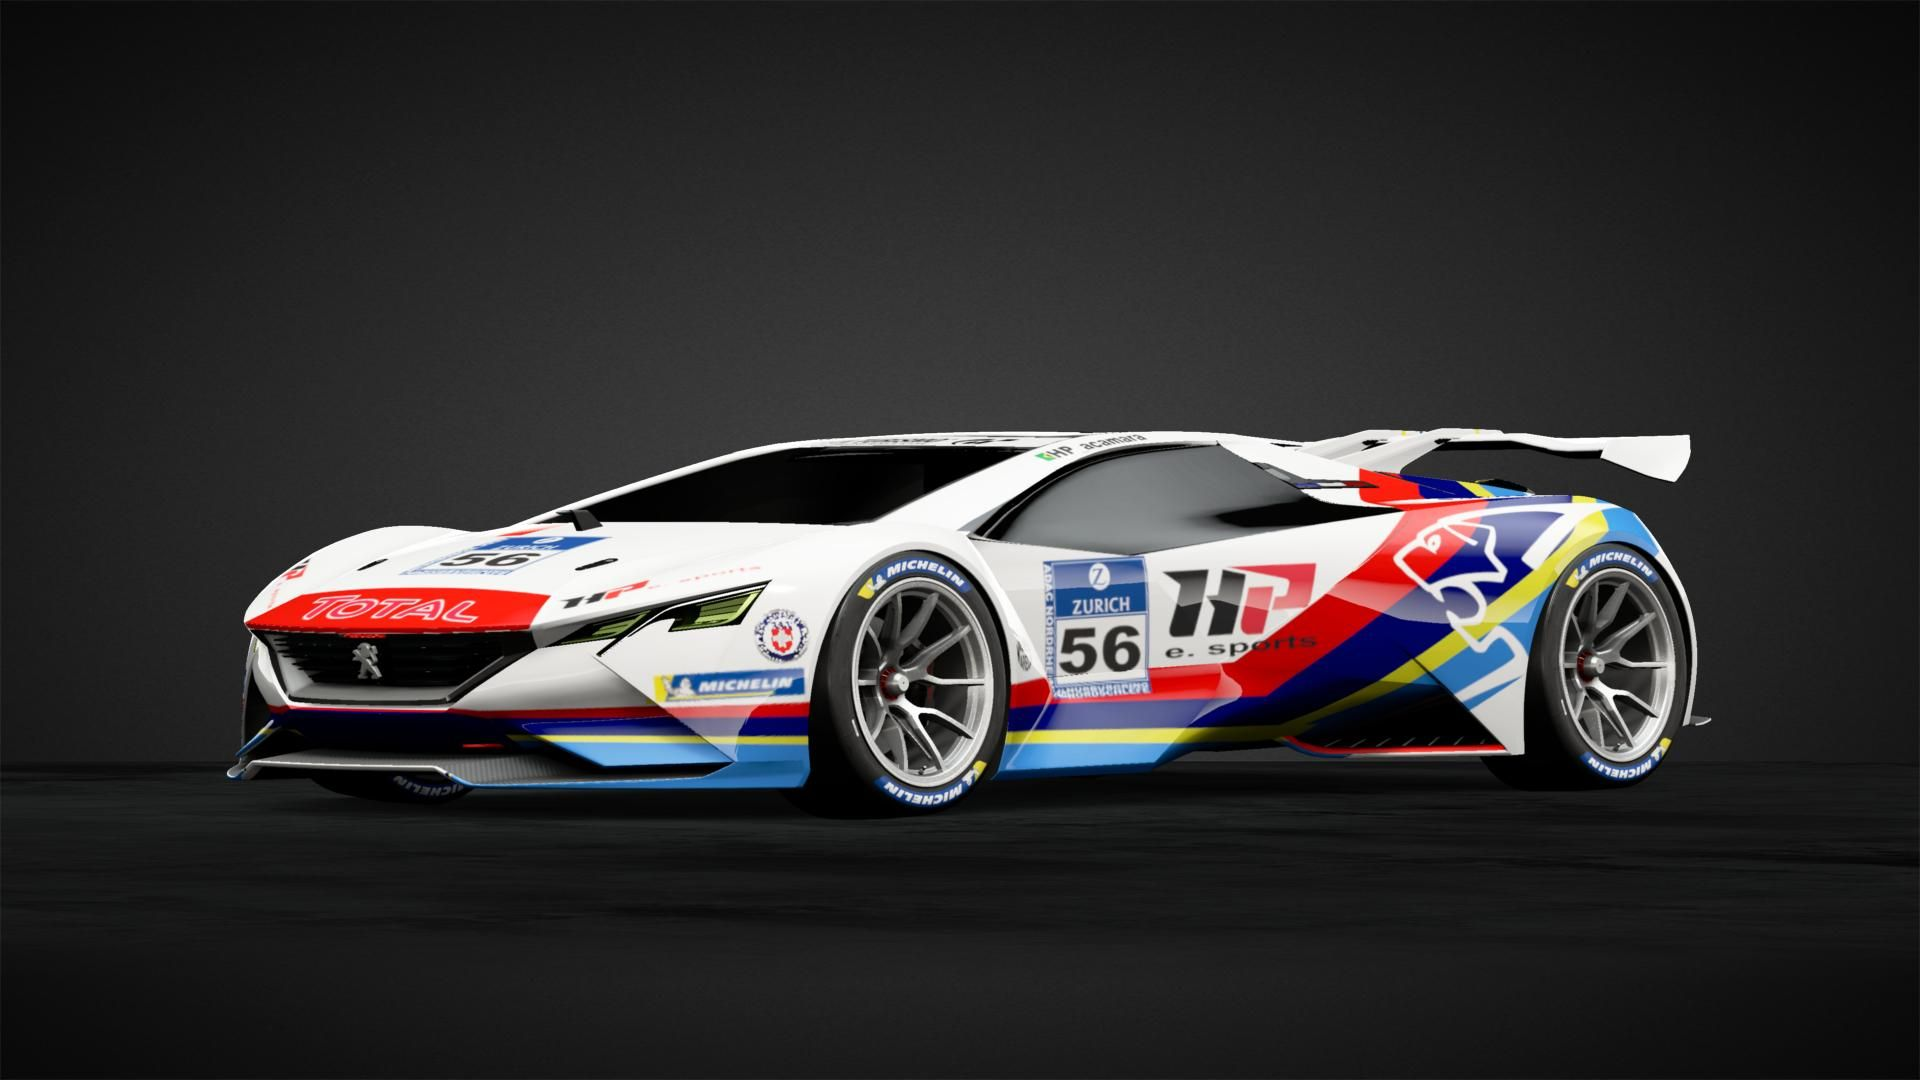 Pin by cawfe on ps4 galery Racing, Sports car, Car